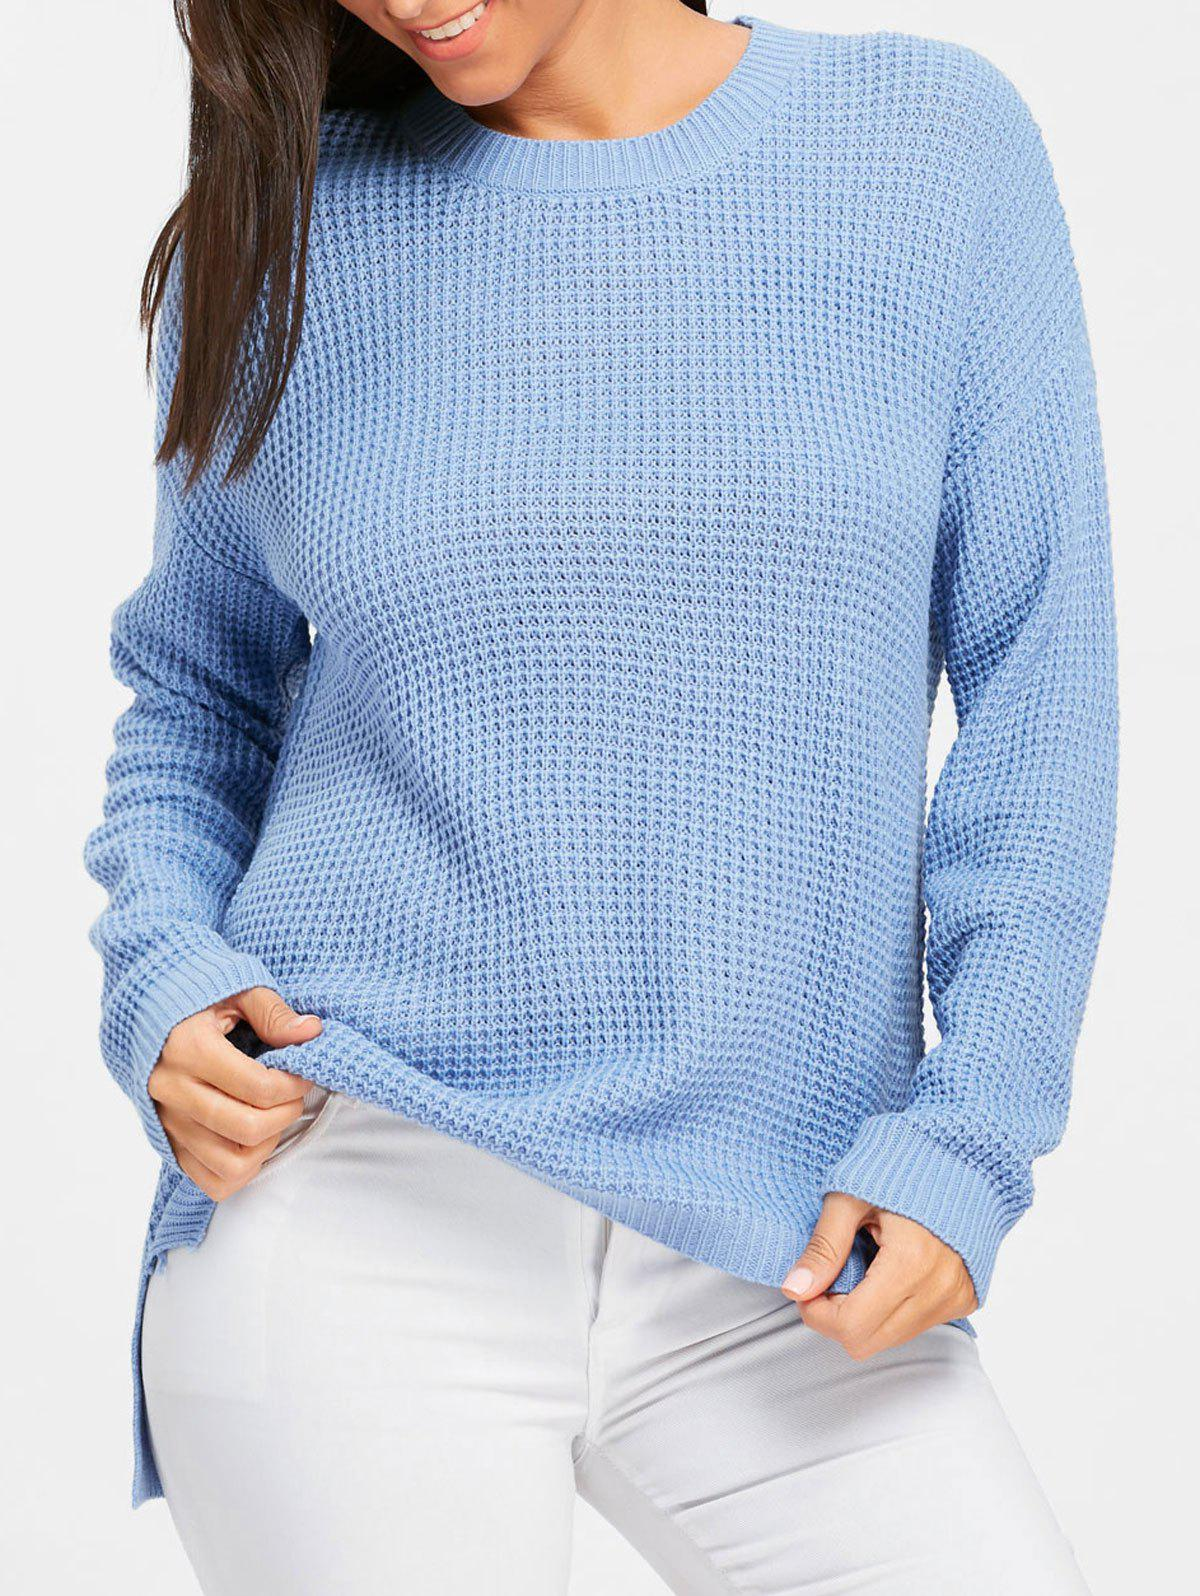 High Low Crew Neck Tunic Sweater - WINDSOR BLUE ONE SIZE